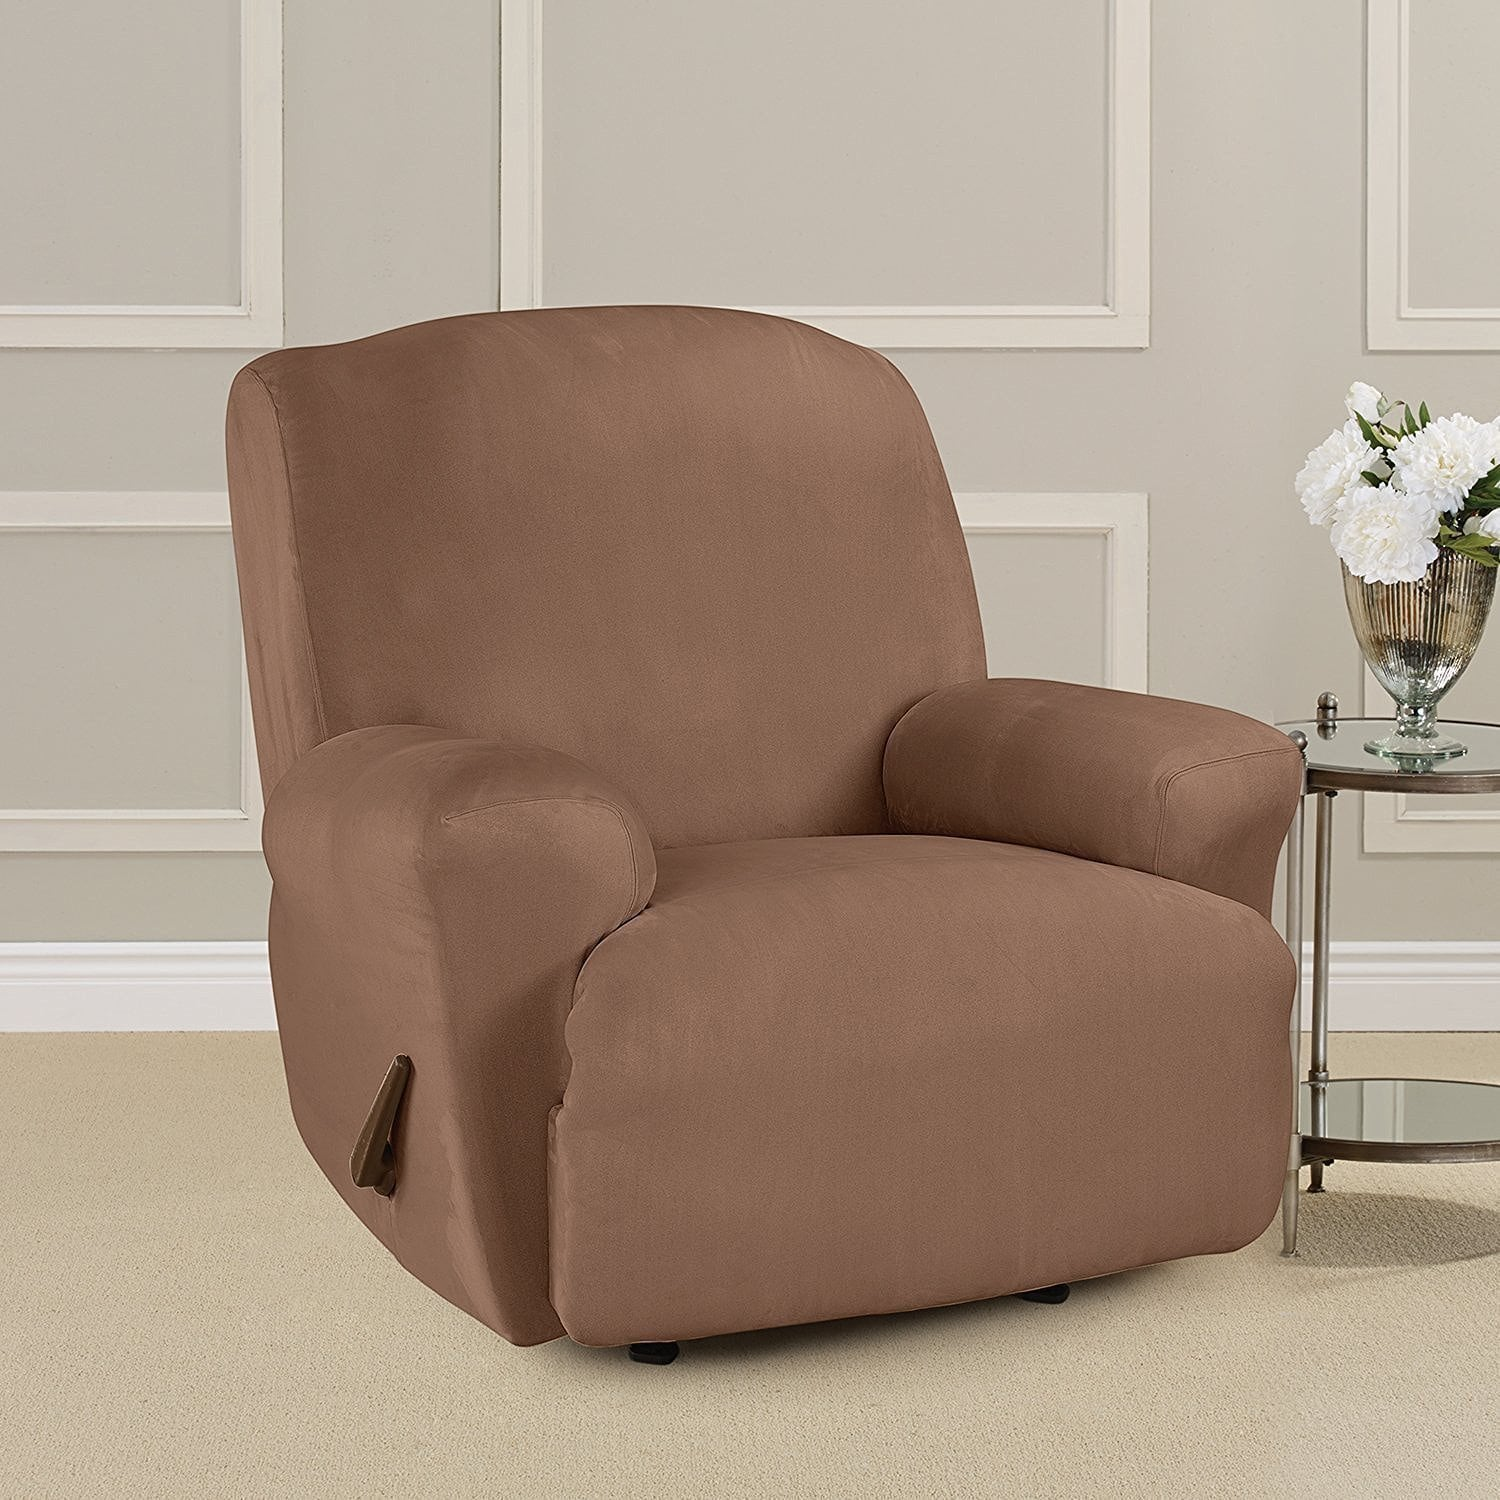 com seat sofa recliner size full sure cover fit covers megansfictions australia slipcover slipcovers of living